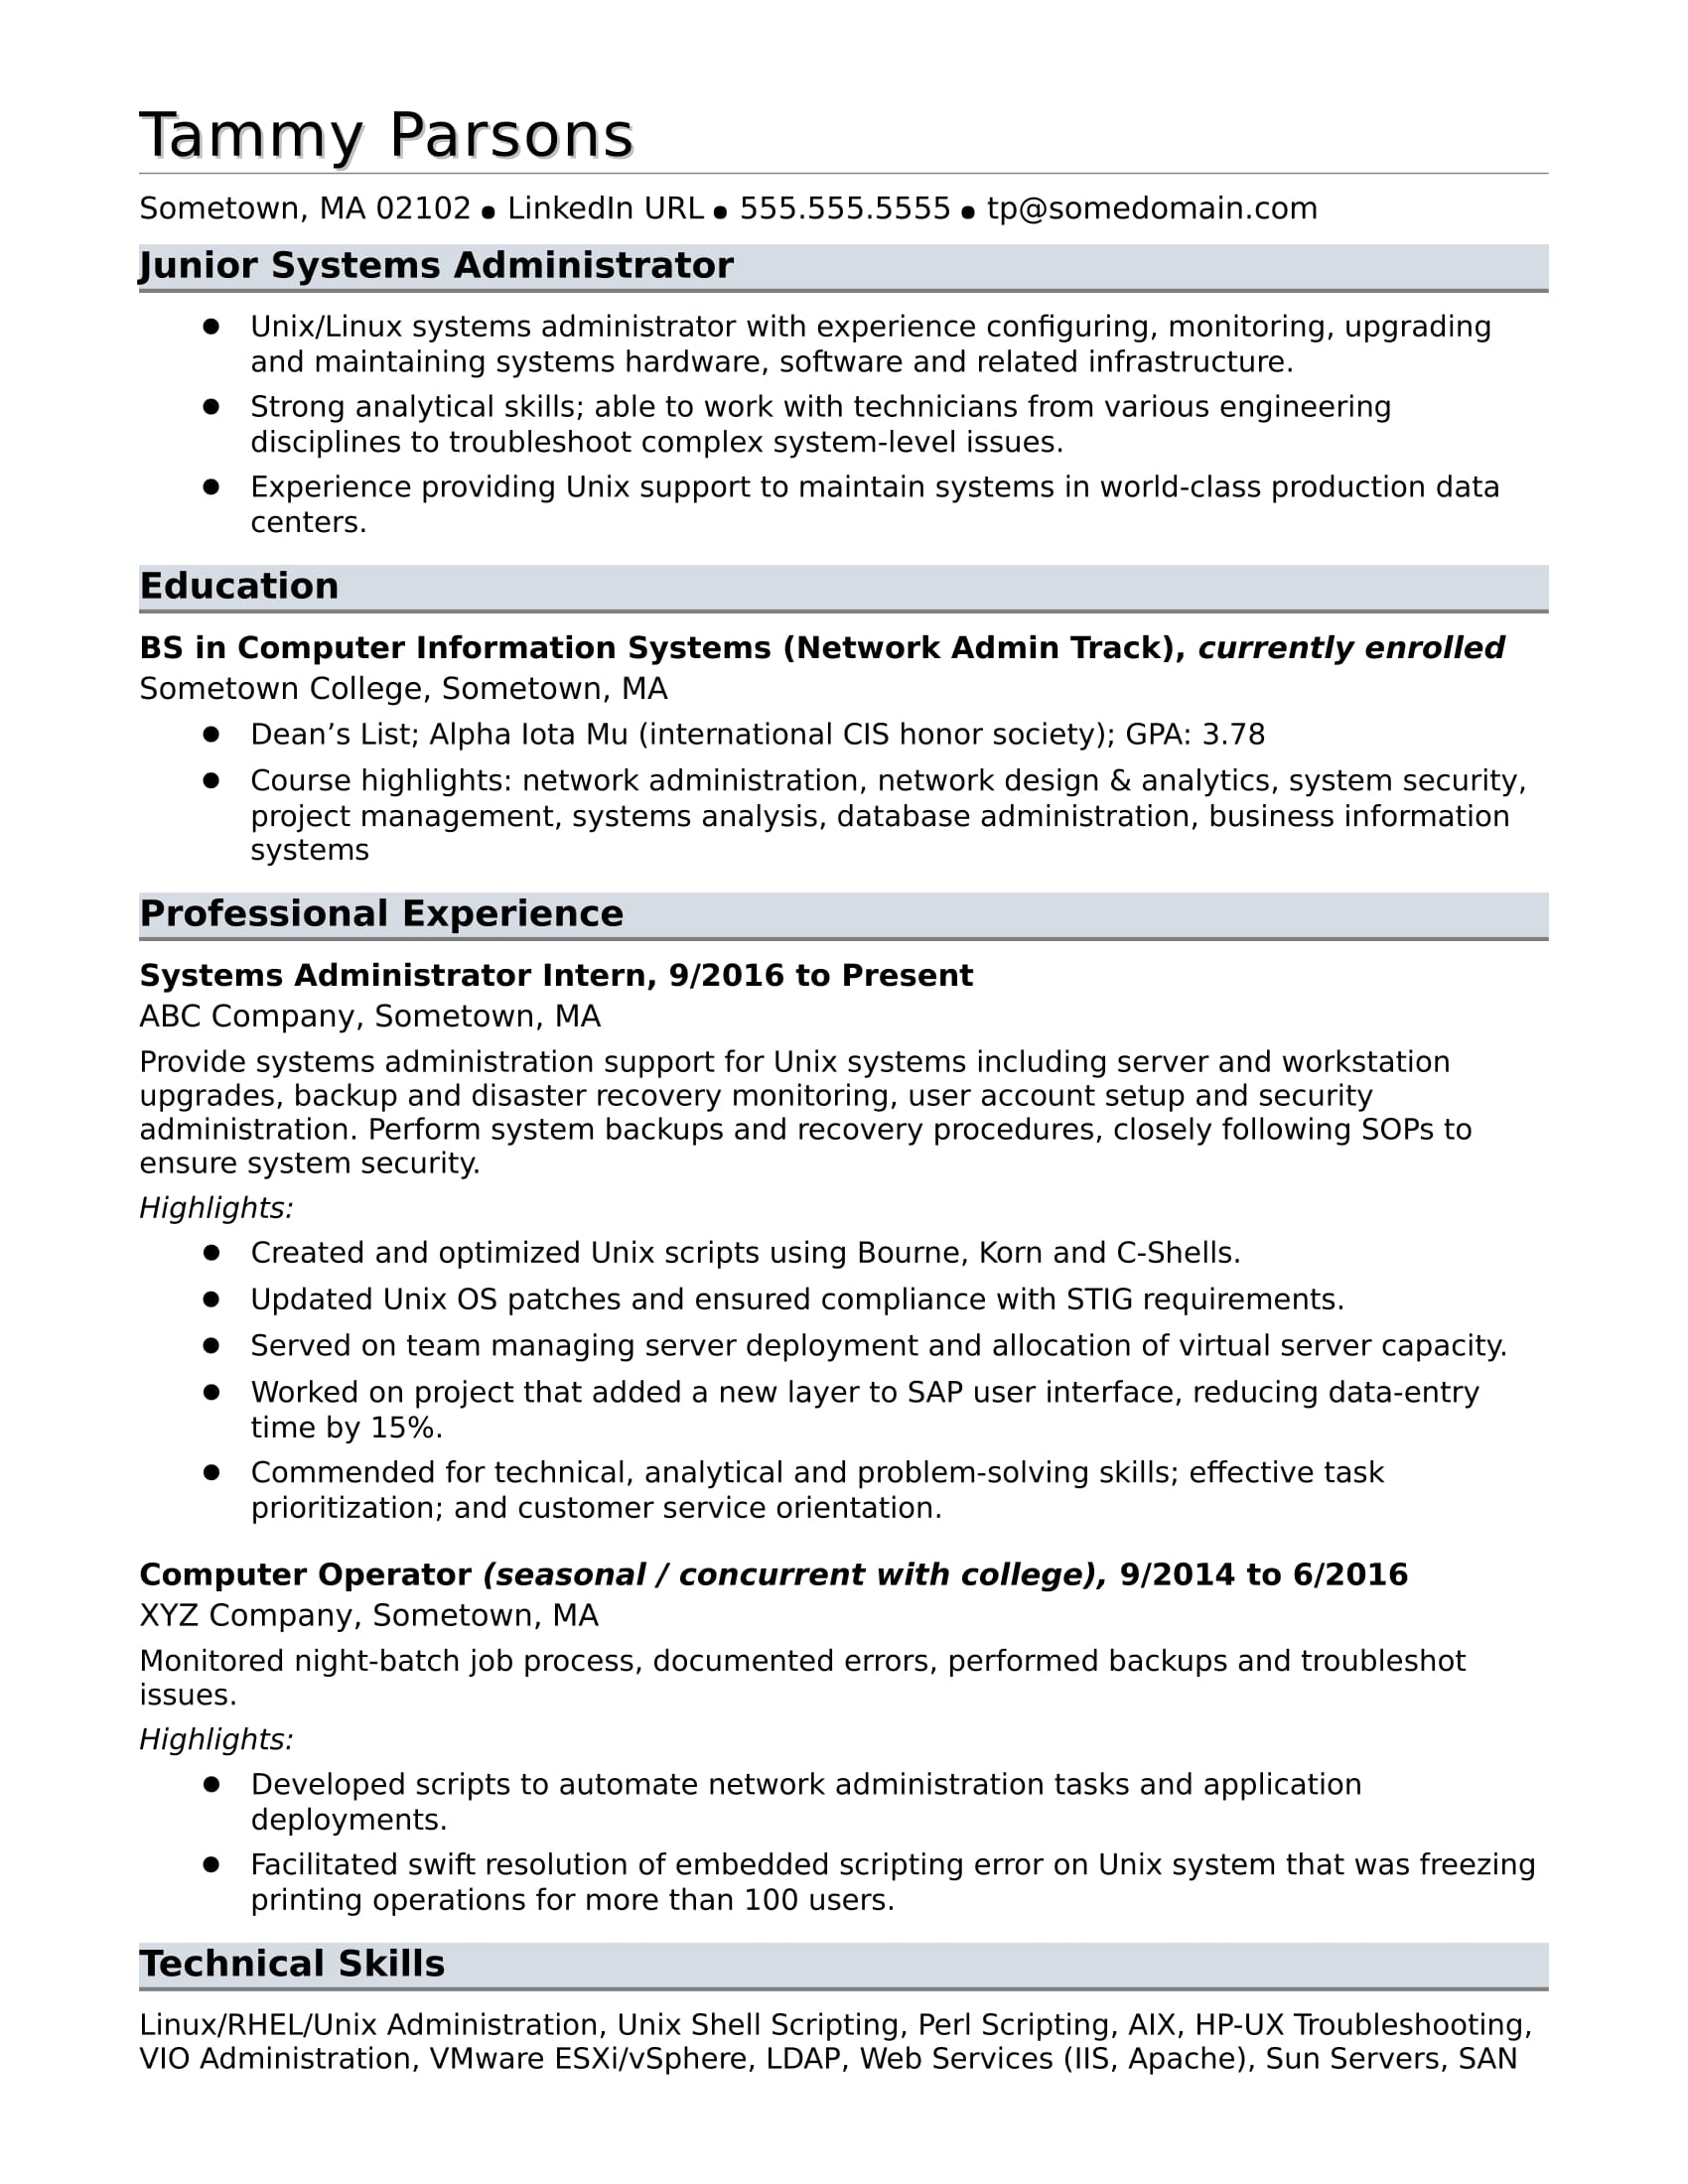 resume System Administrator Skills Resume sample resume for an entry level systems administrator monster com administrator